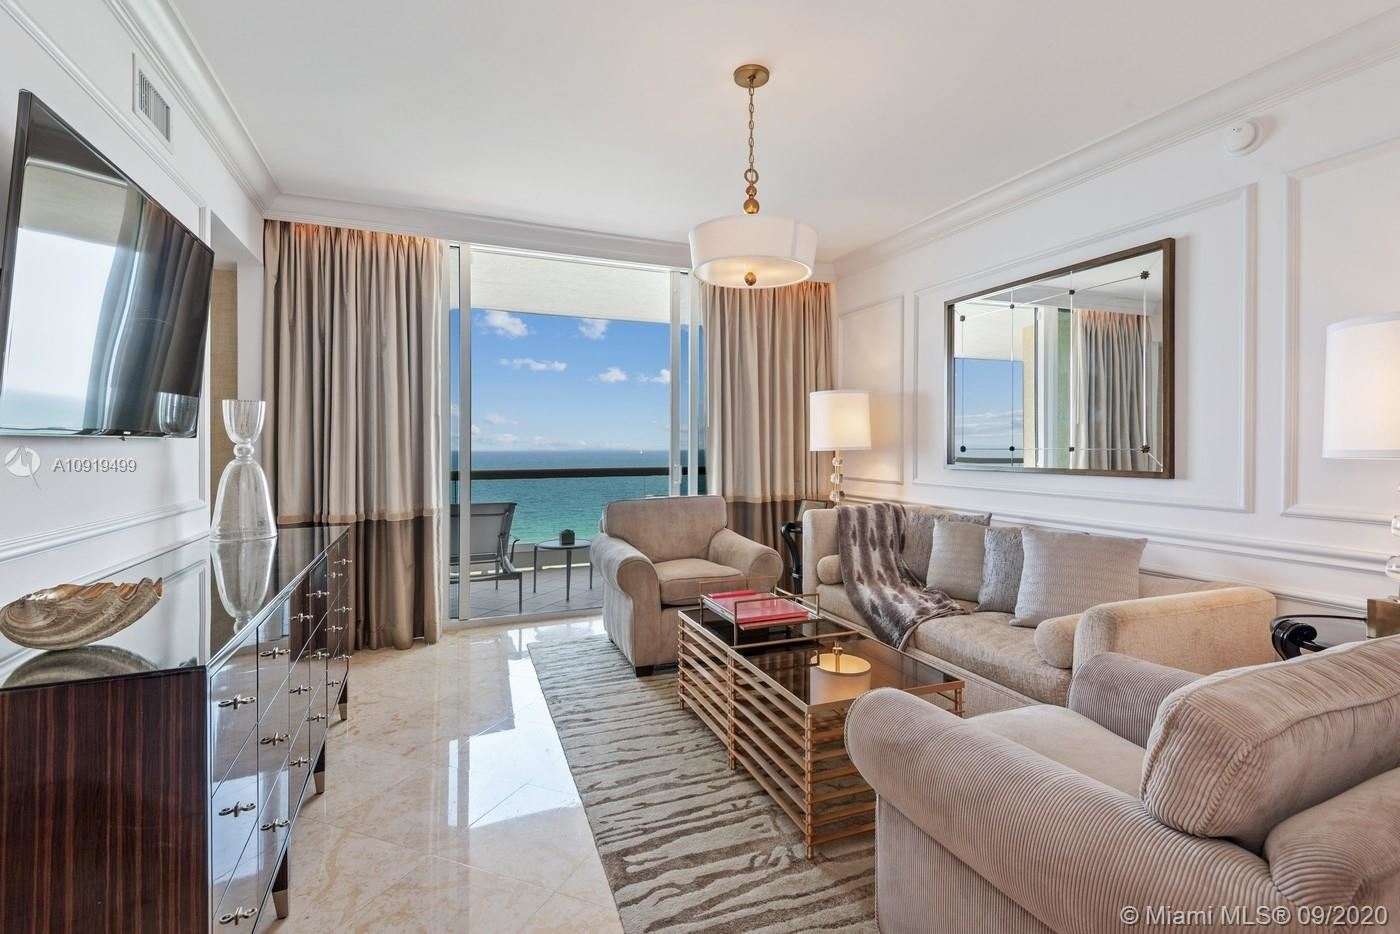 17875 Collins Ave #1404, Sunny Isles, FL 33160 - #: A10919499